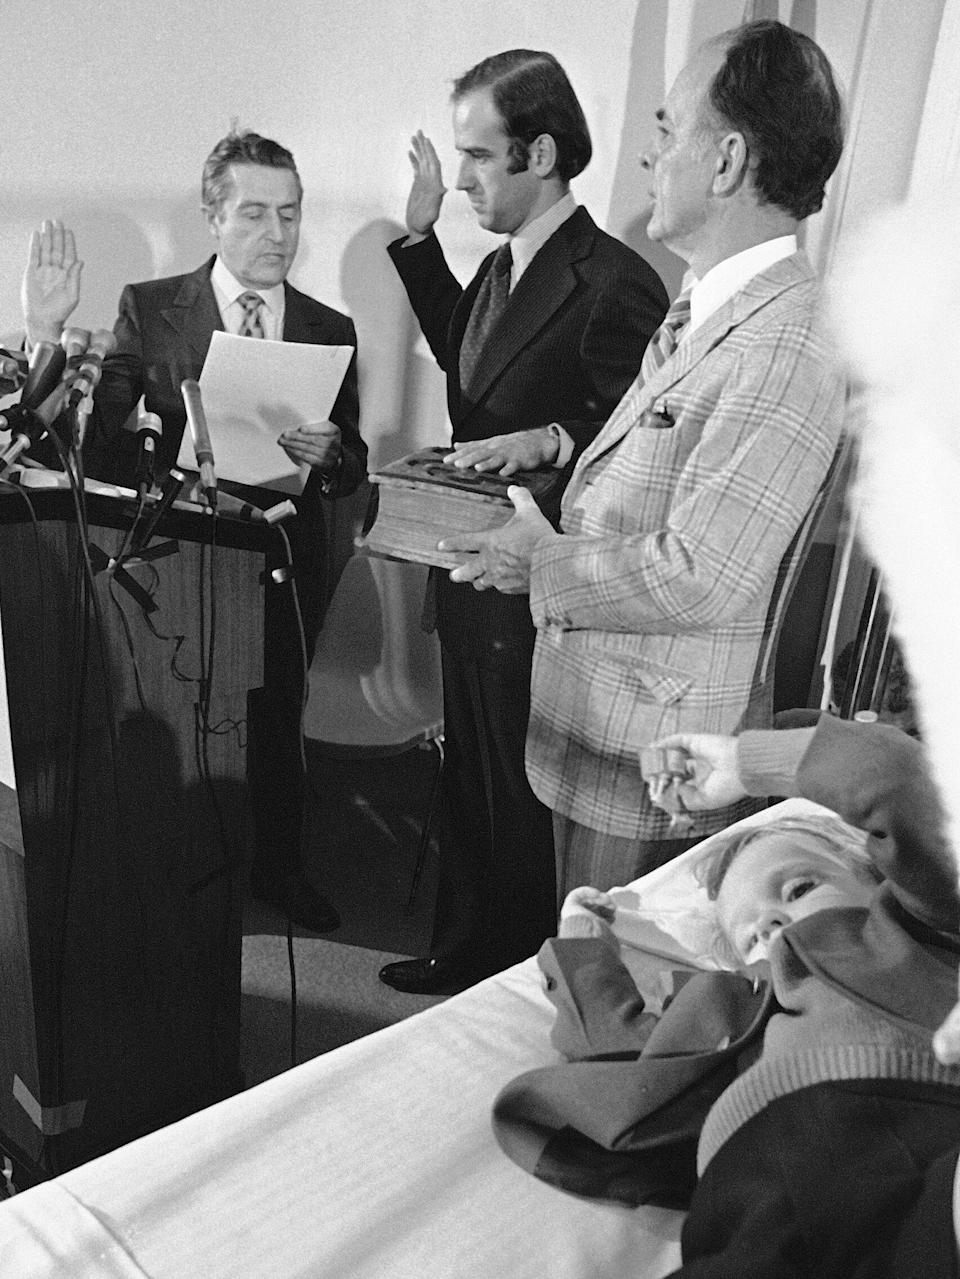 Joe Biden (center) is sworn in as a senator from Delaware at a Wilmington hospital on Jan. 5, 1973.Four-year-old Beau Biden (foreground) was injured in an accident that killed his mother and sister a week before Christmas. His 2-year-old brother, Hunter, was also injured. (Photo: Associated Press)